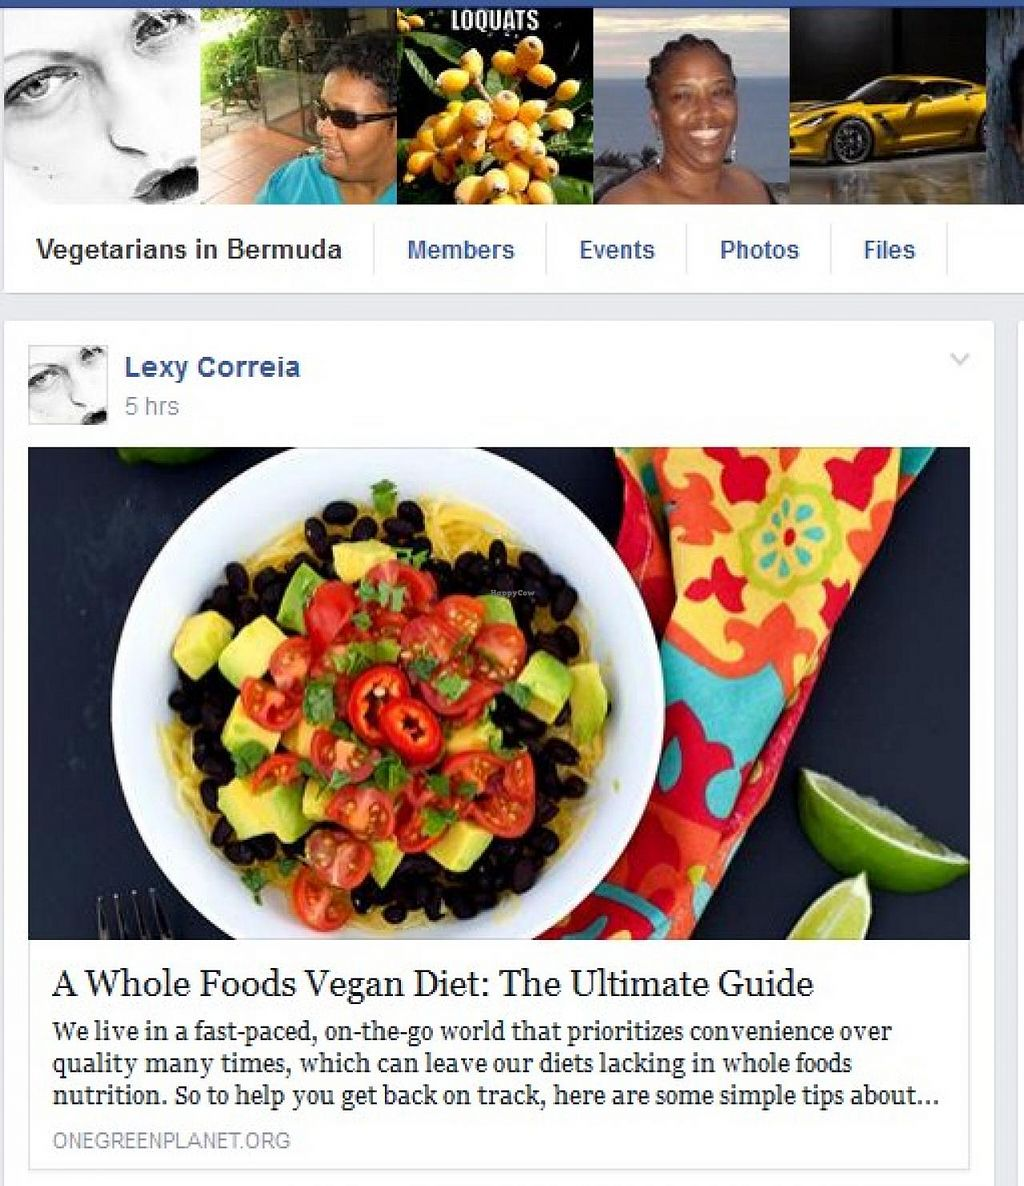 """Photo of Vegetarian Society of Bermuda  by <a href=""""/members/profile/community"""">community</a> <br/>Vegetarian Society of Bermuda <br/> July 11, 2014  - <a href='/contact/abuse/image/48793/73772'>Report</a>"""